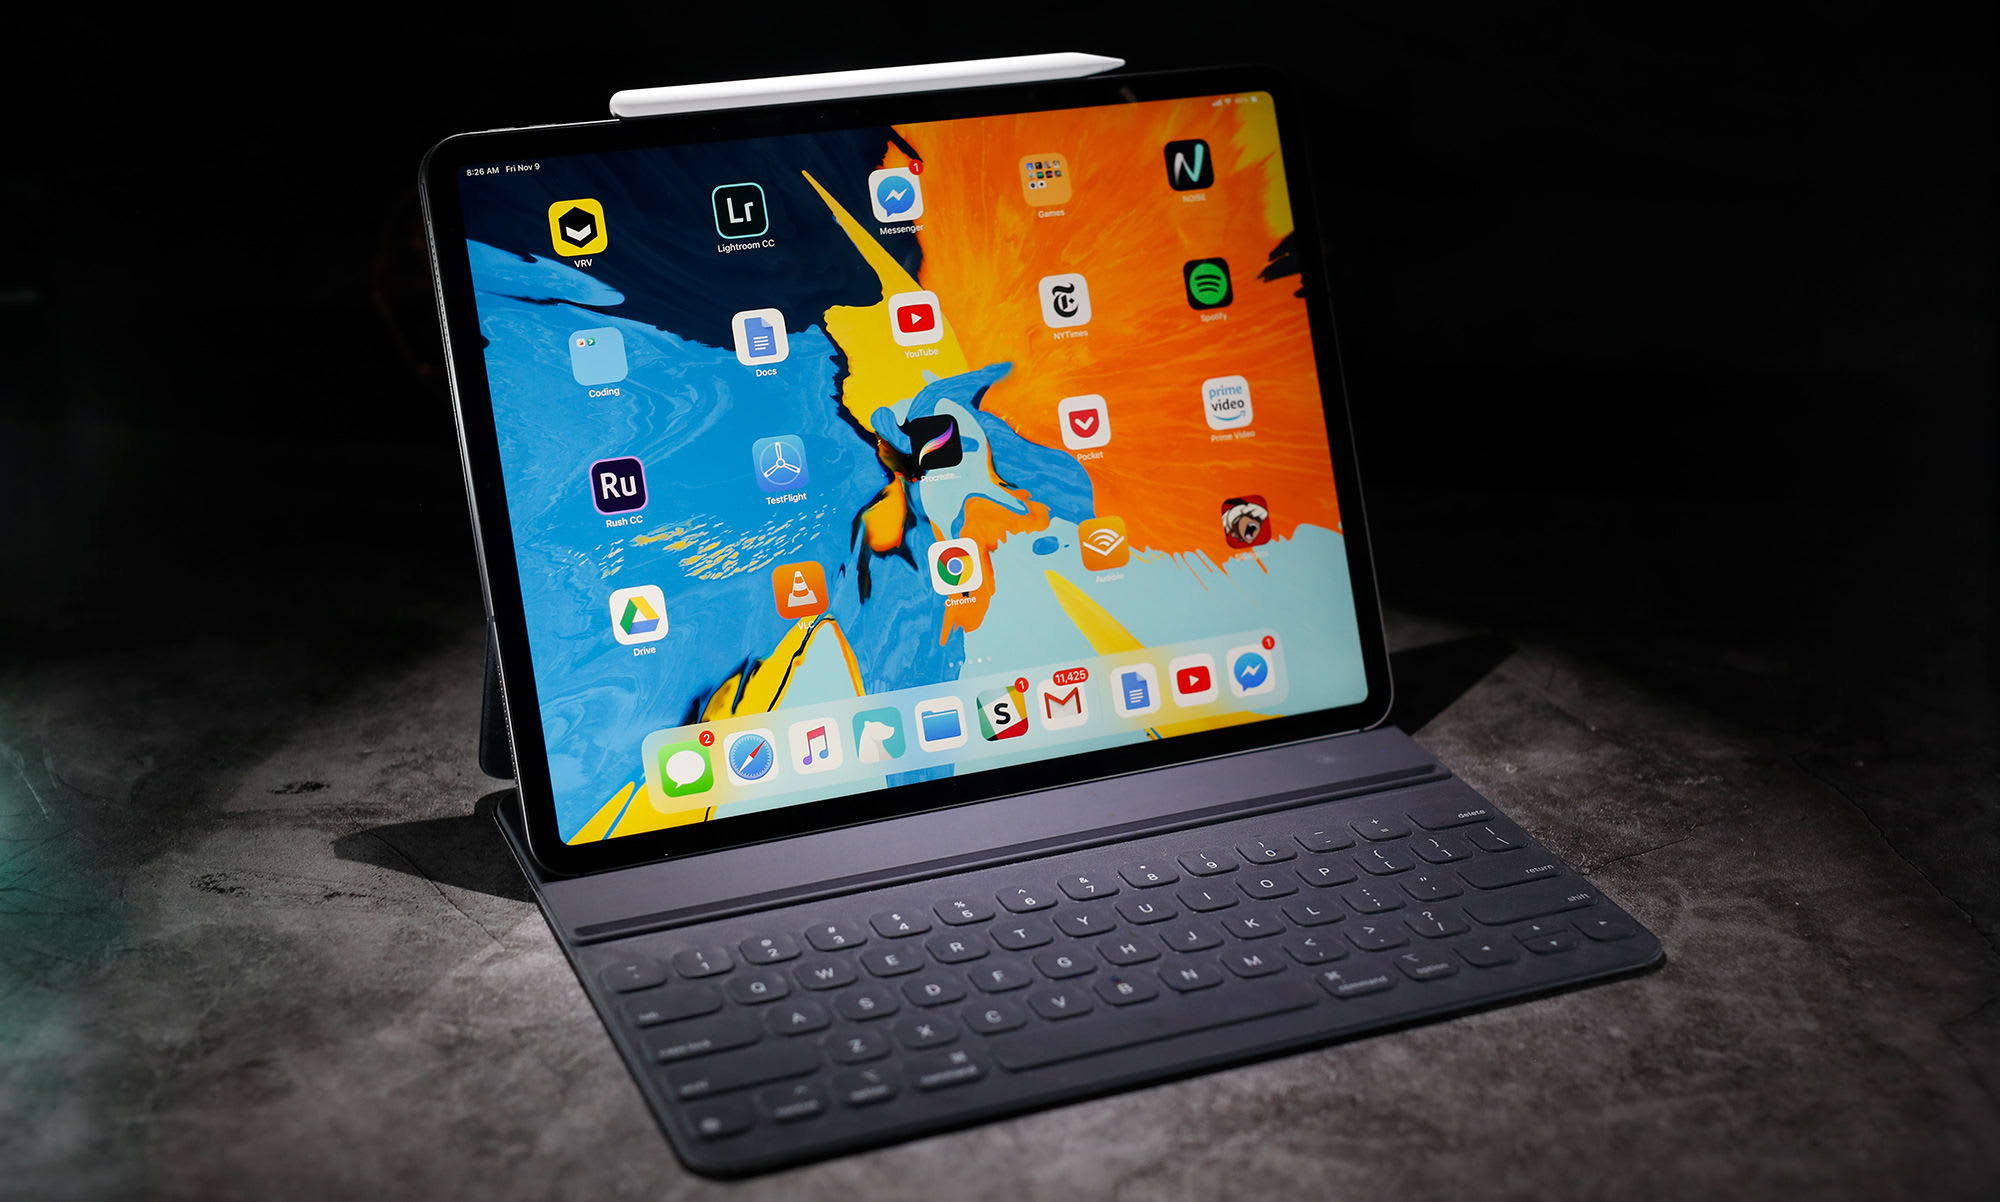 iPad Pro 12 9 review (2018): The future of computing?